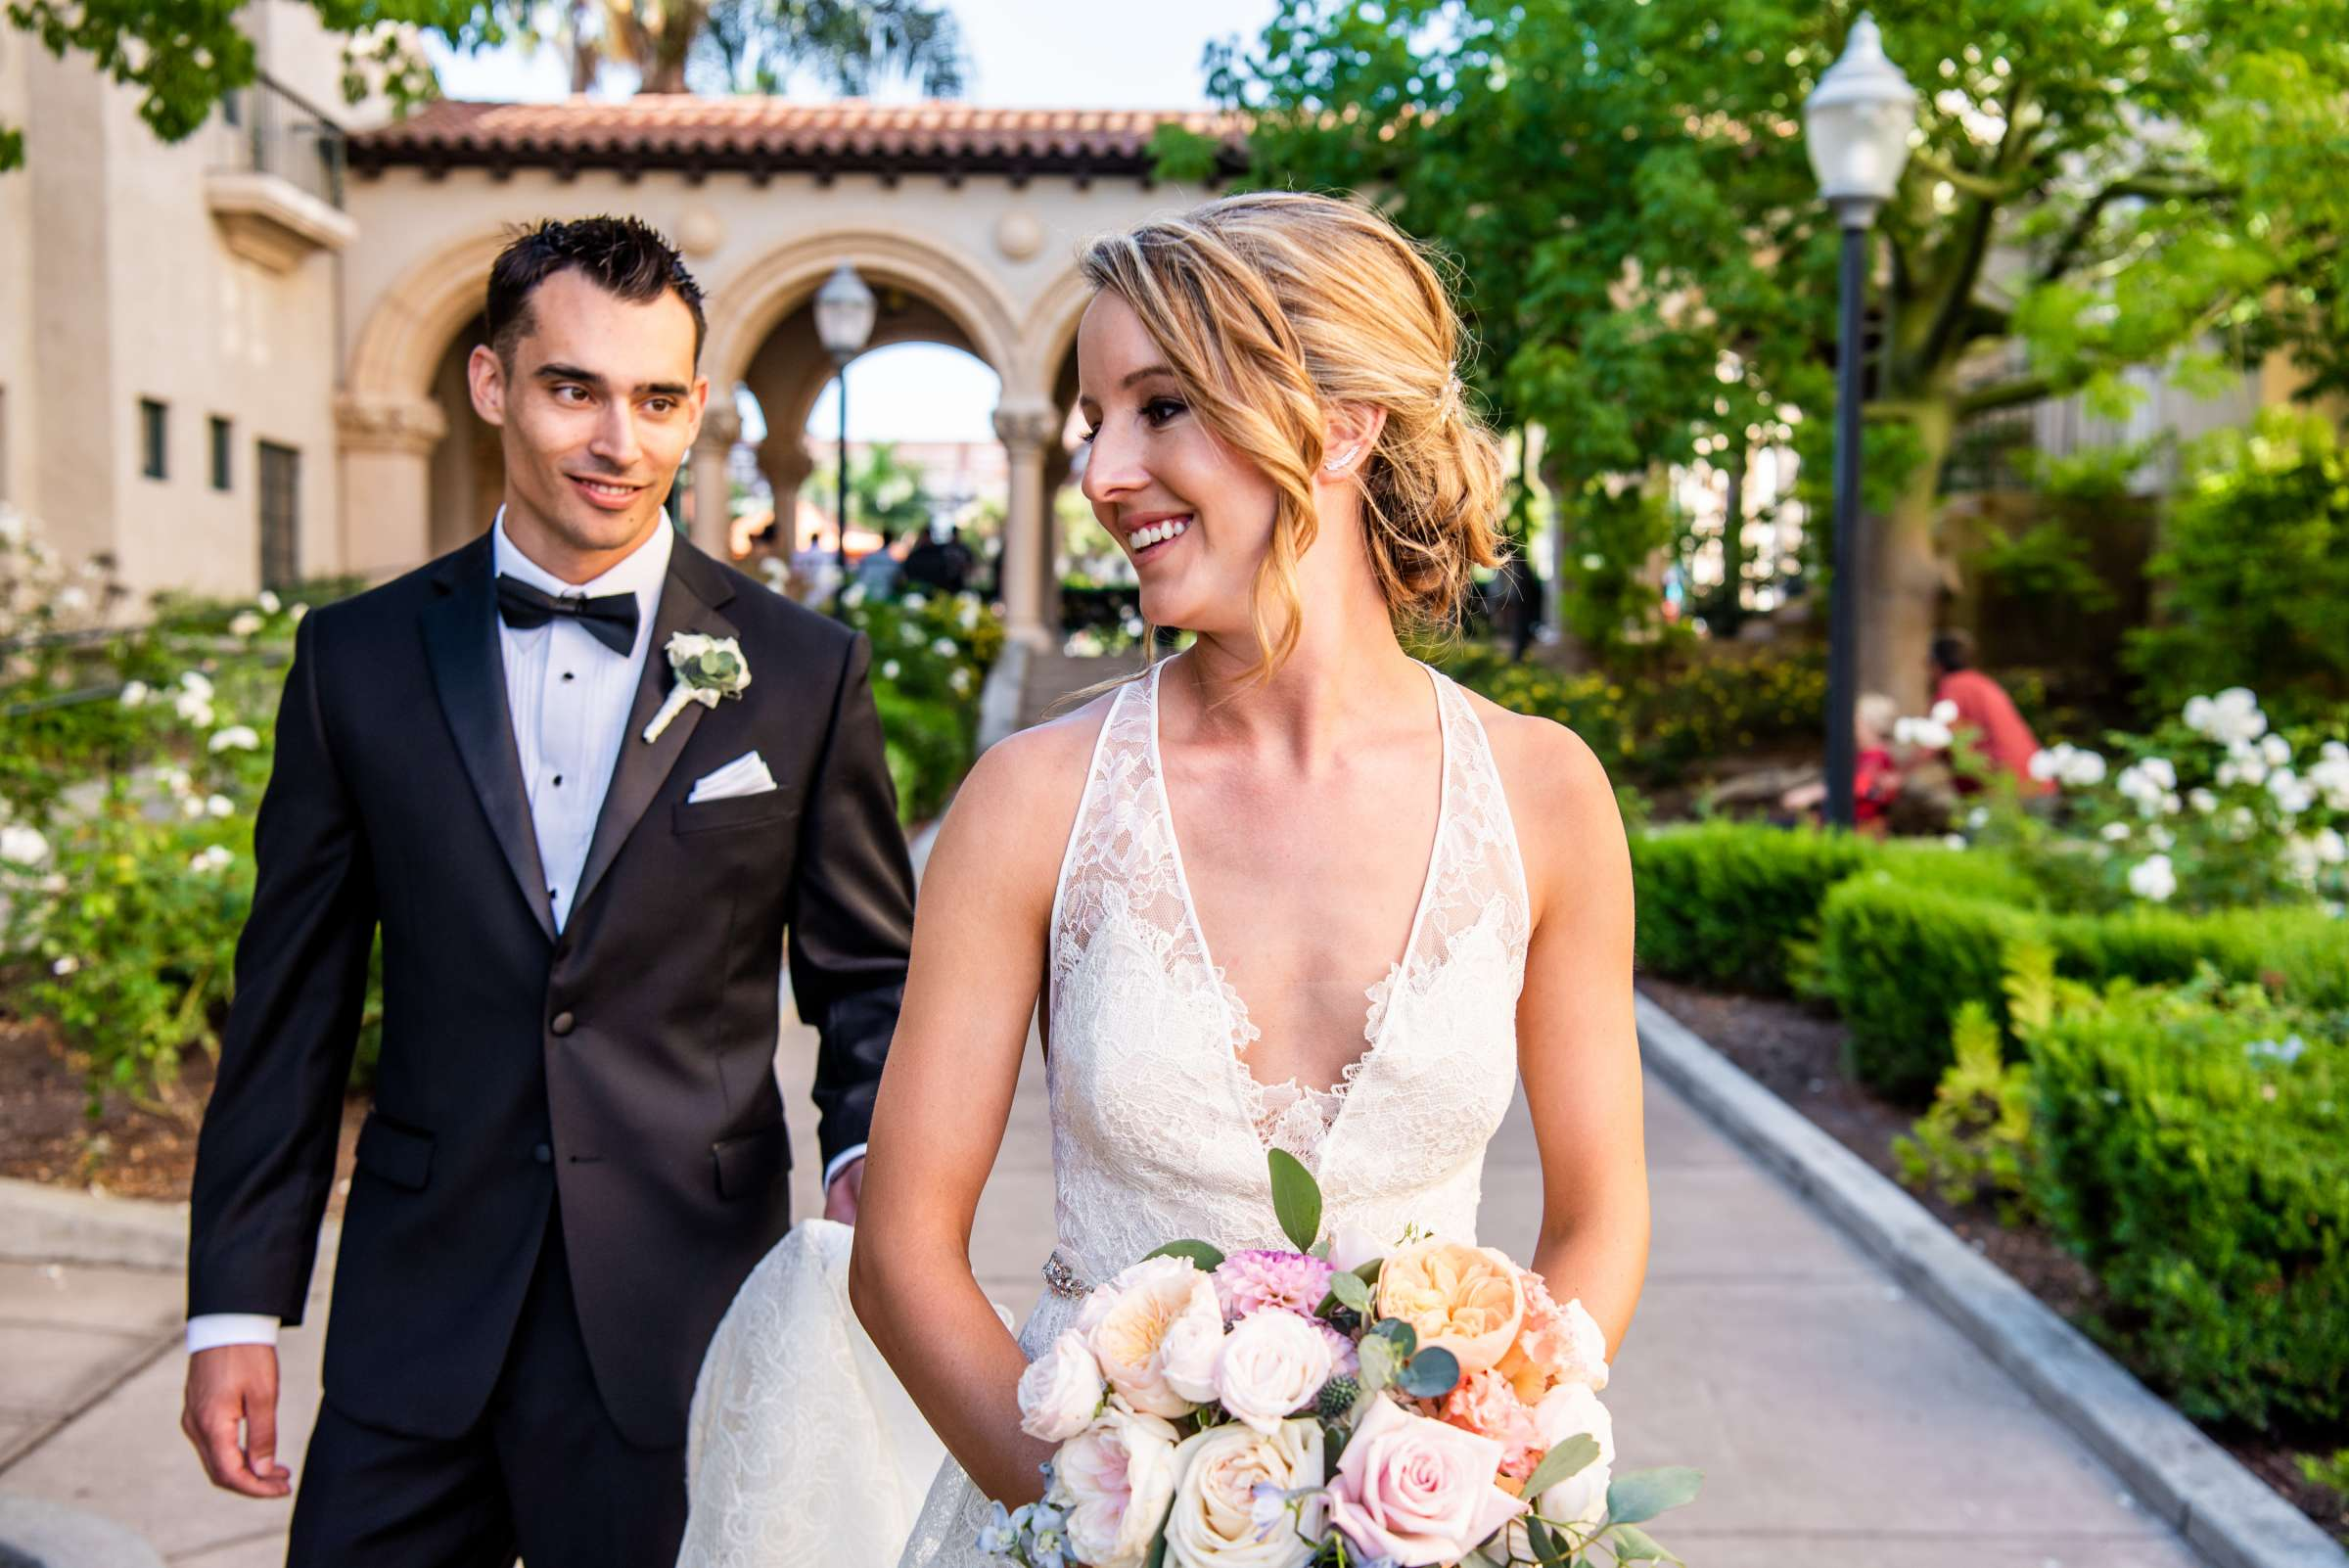 The Prado Wedding coordinated by Bliss Events, Sara and Marvin Wedding Photo #559595 by True Photography